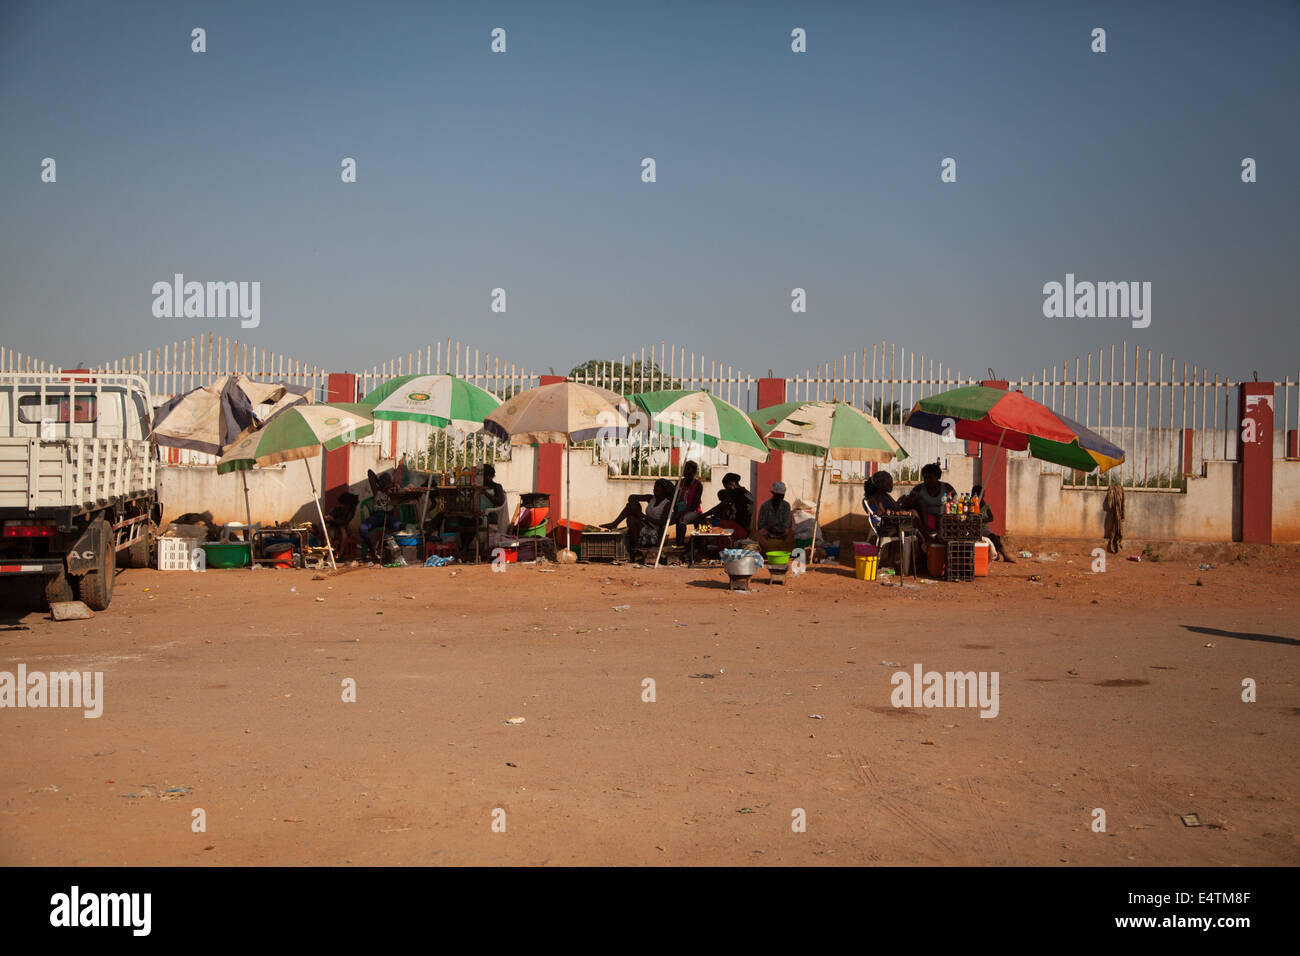 Angola, Luanda, Africa daily life umbrellas and informal traders - Stock Image